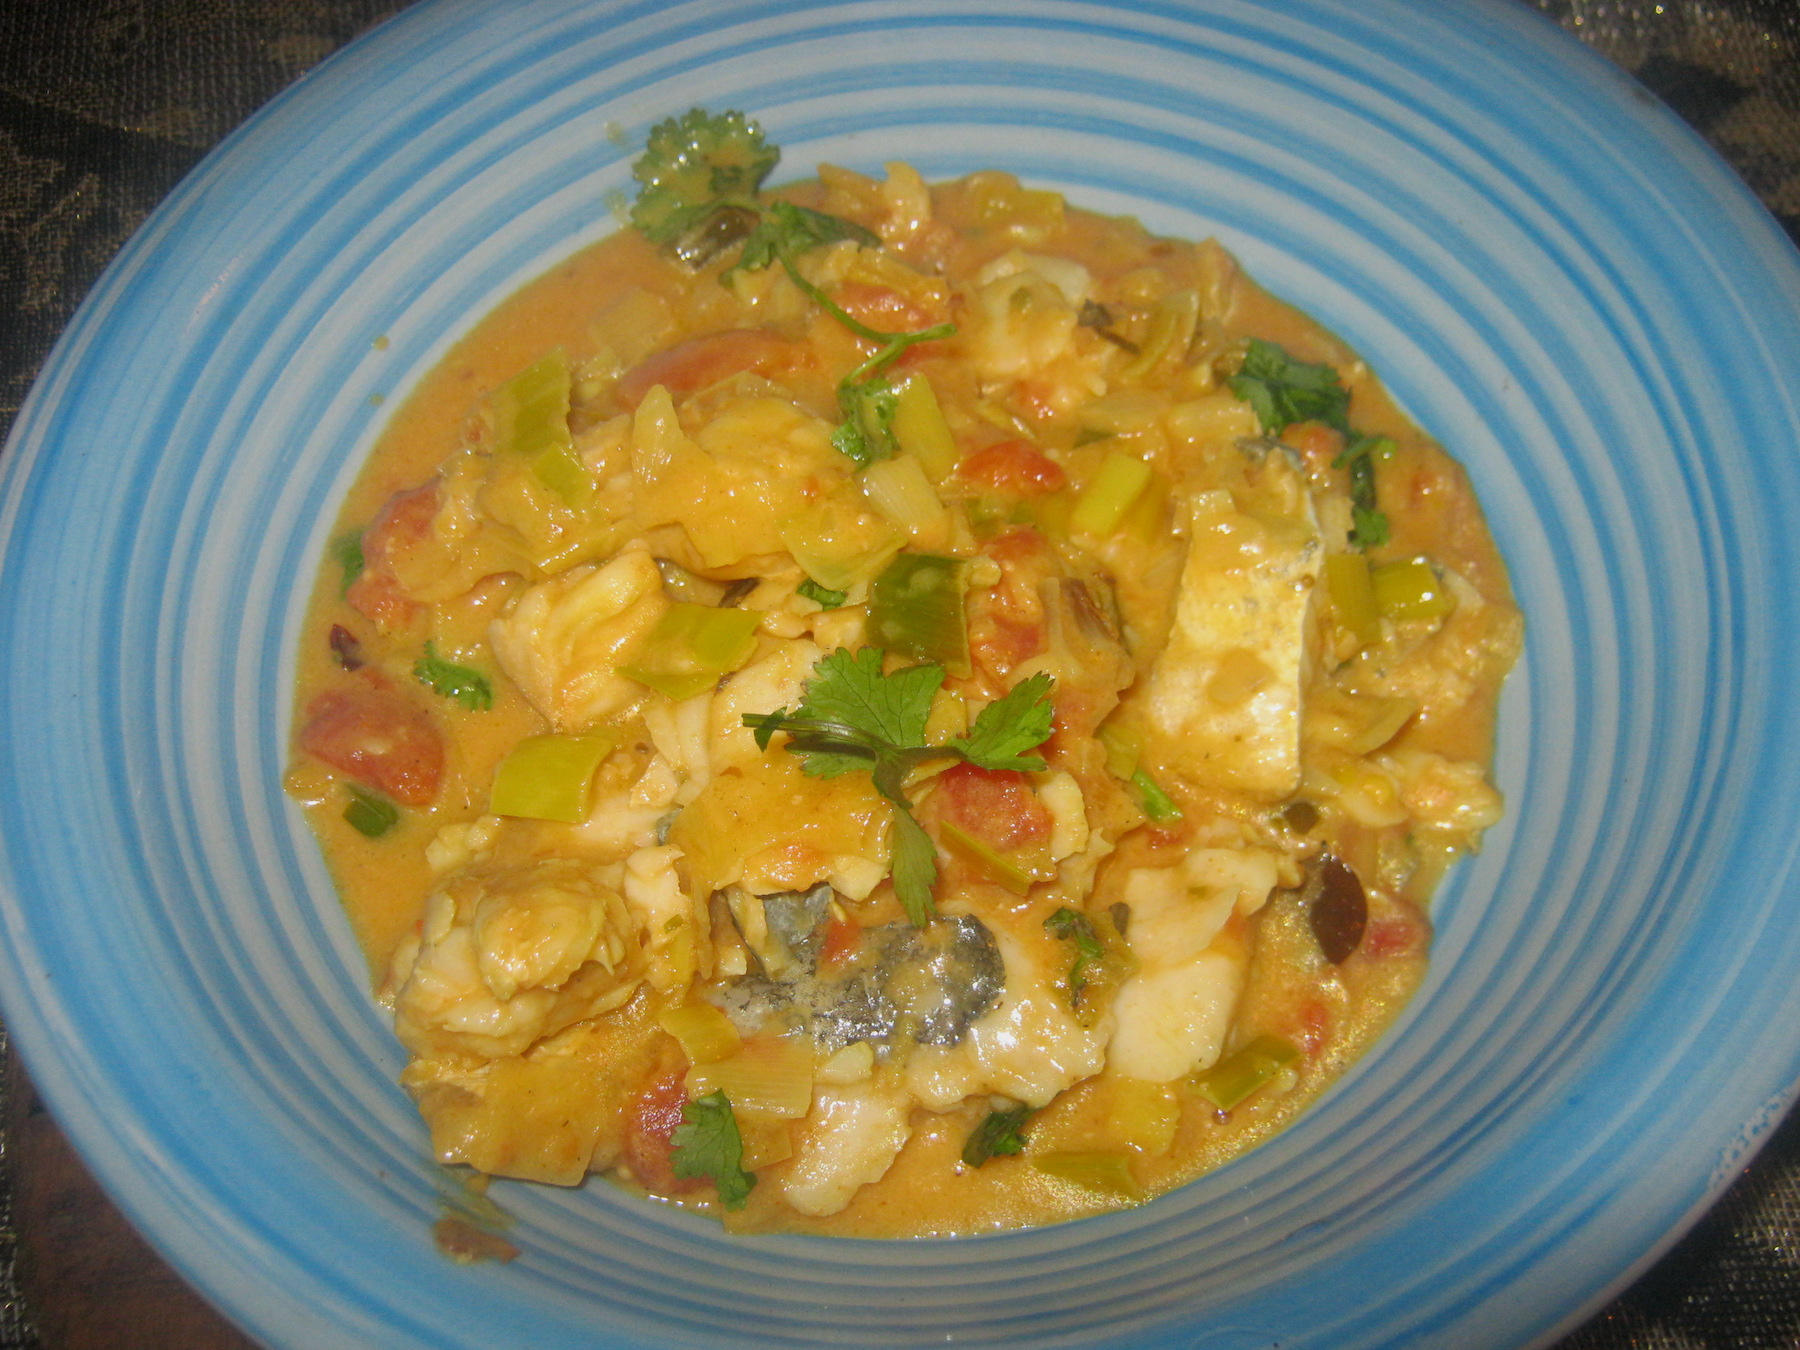 Hake curry in a blue bowl